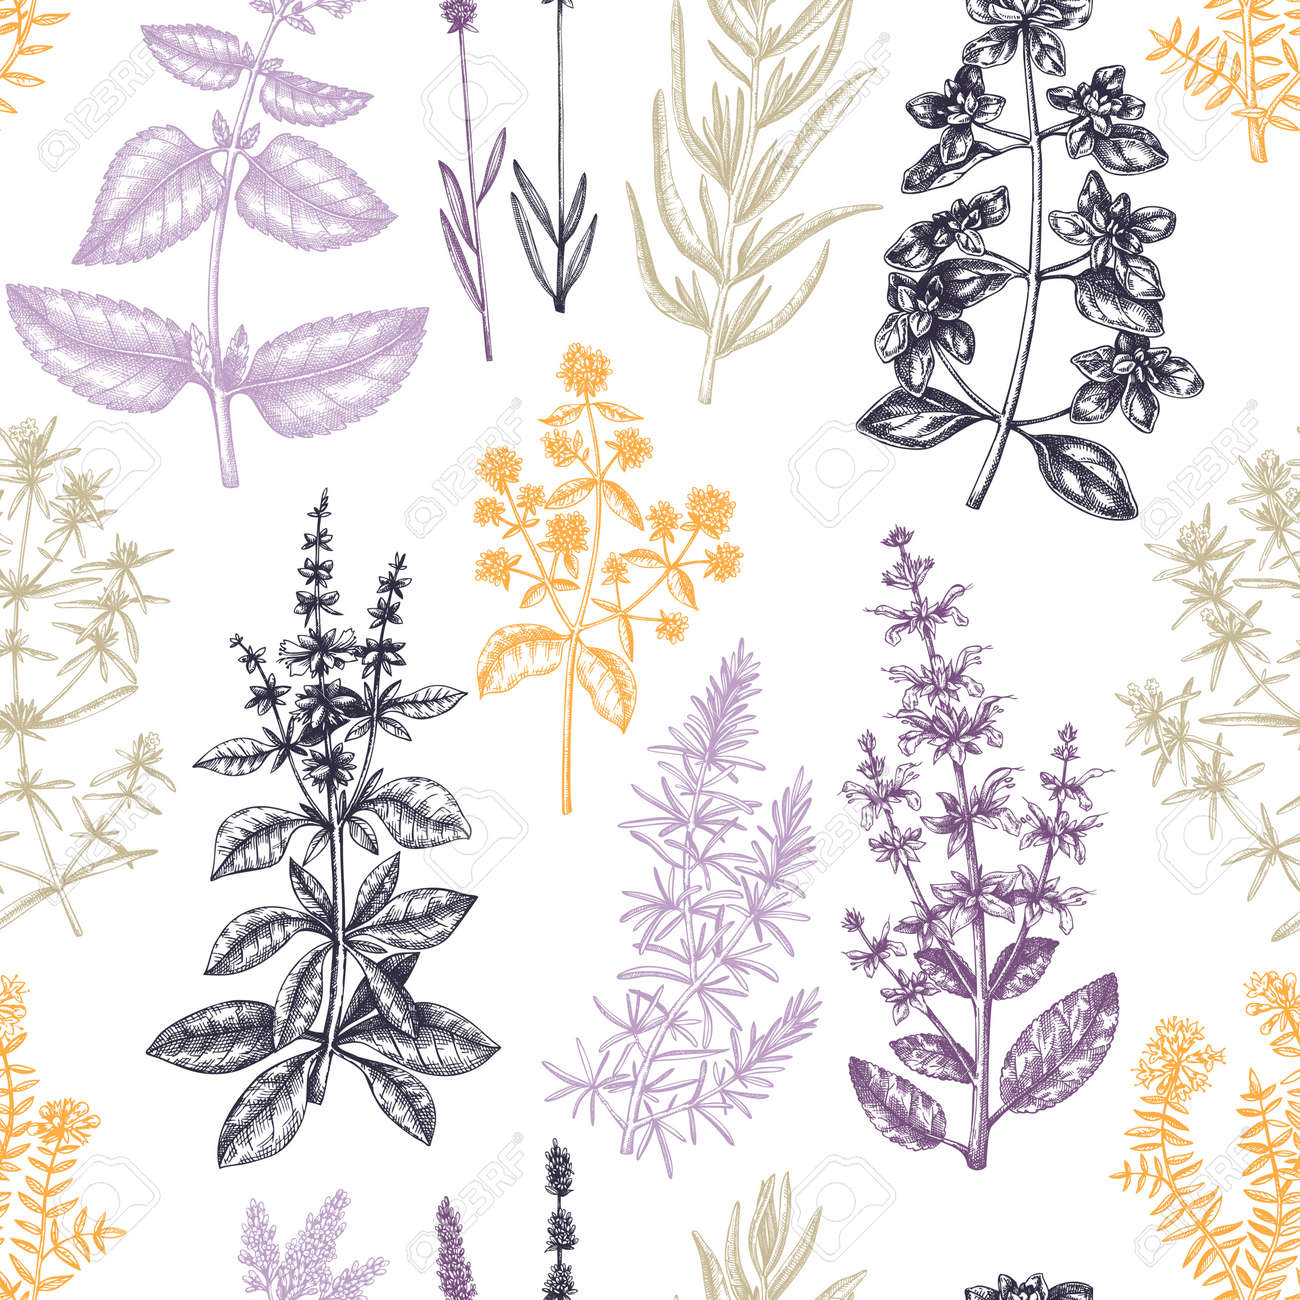 Traditional Provence herbs pattern. - 170259439